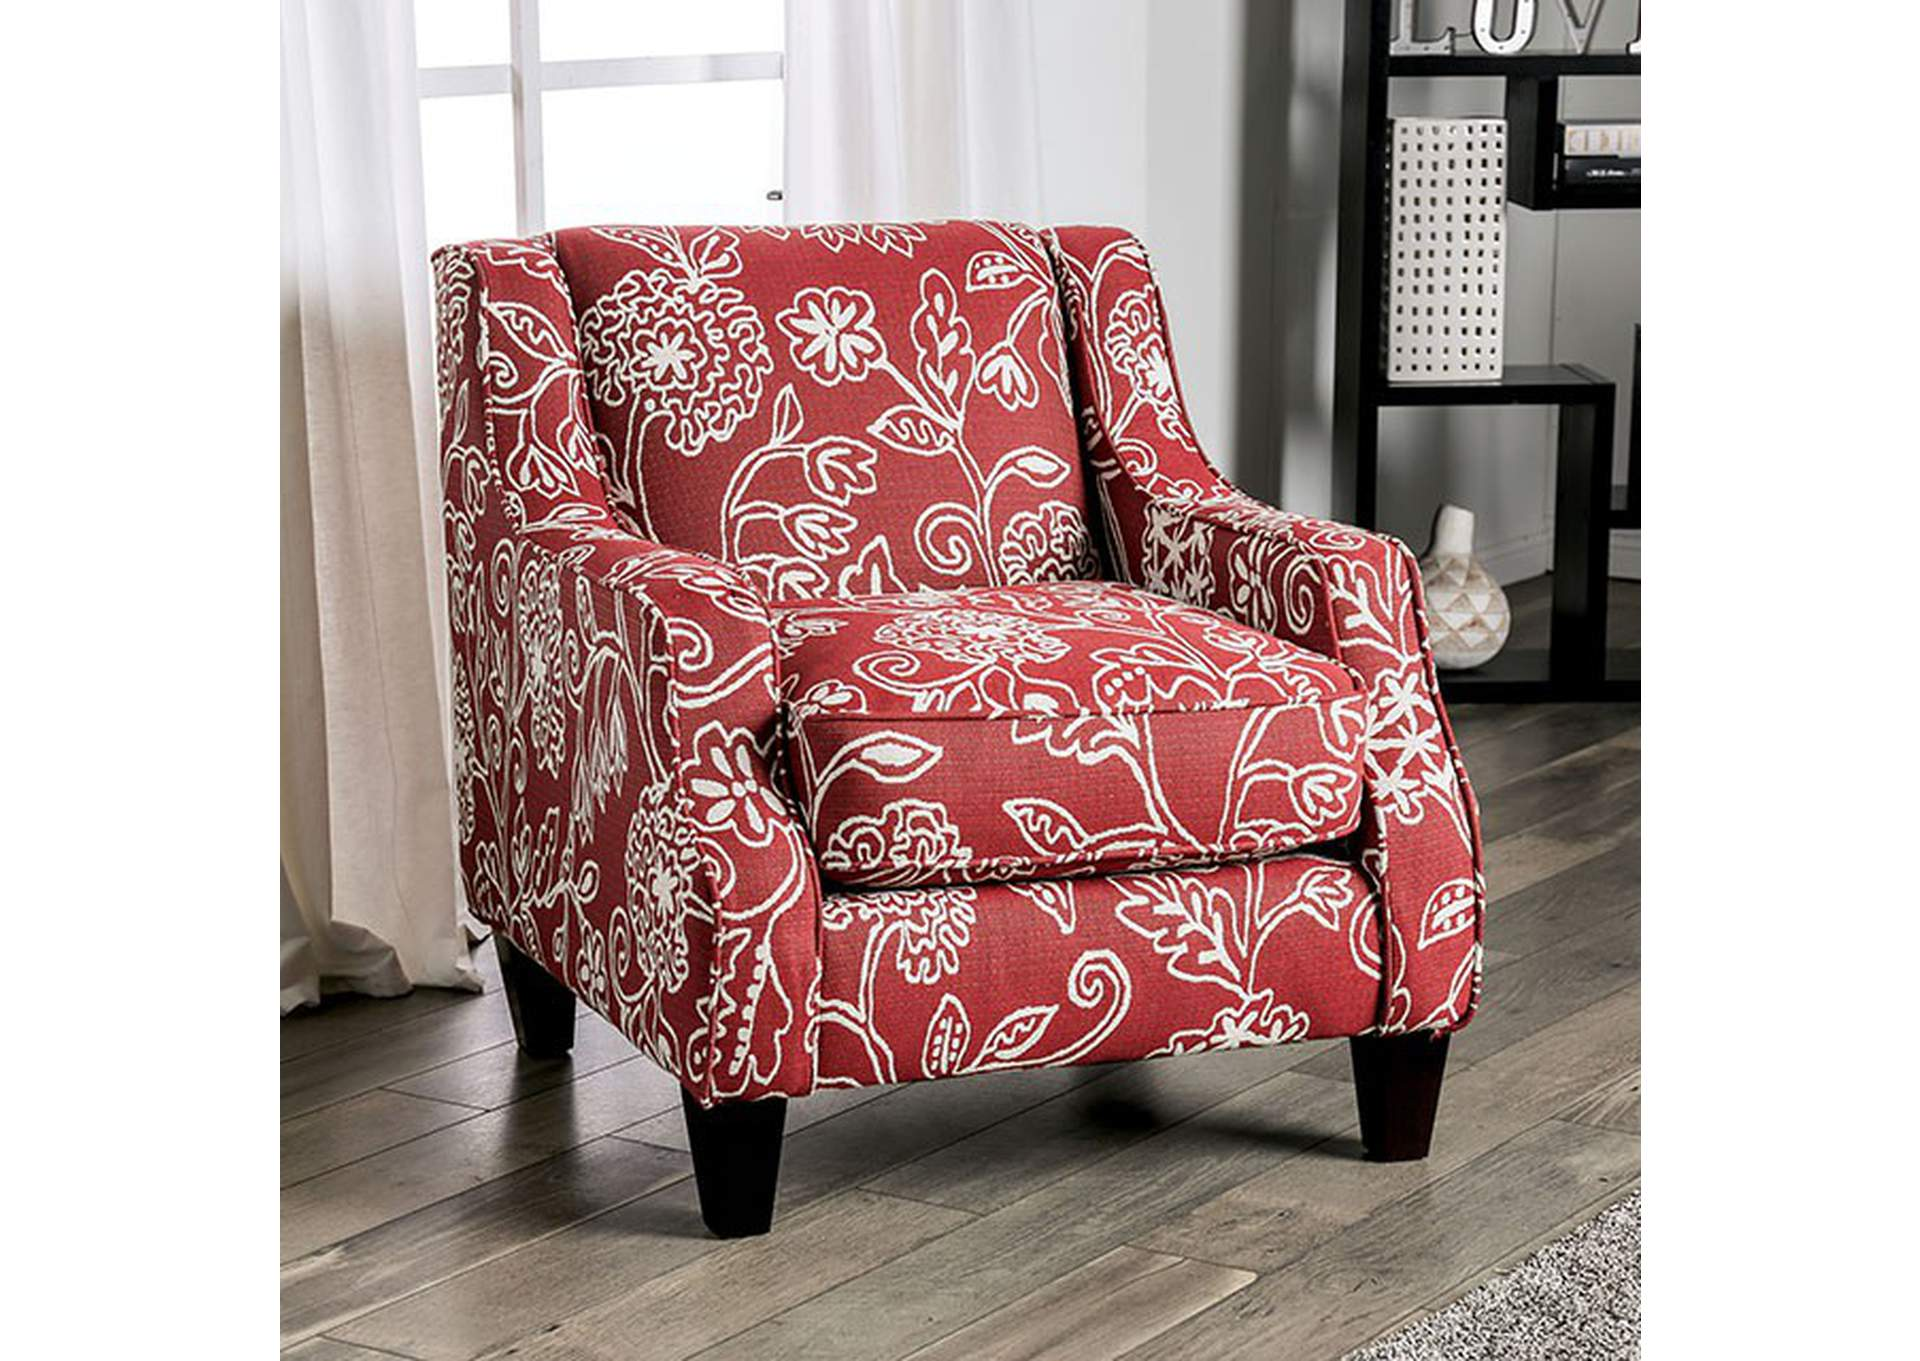 Prime Jordan Home Furniture Ames Red White Floral Chair Gmtry Best Dining Table And Chair Ideas Images Gmtryco